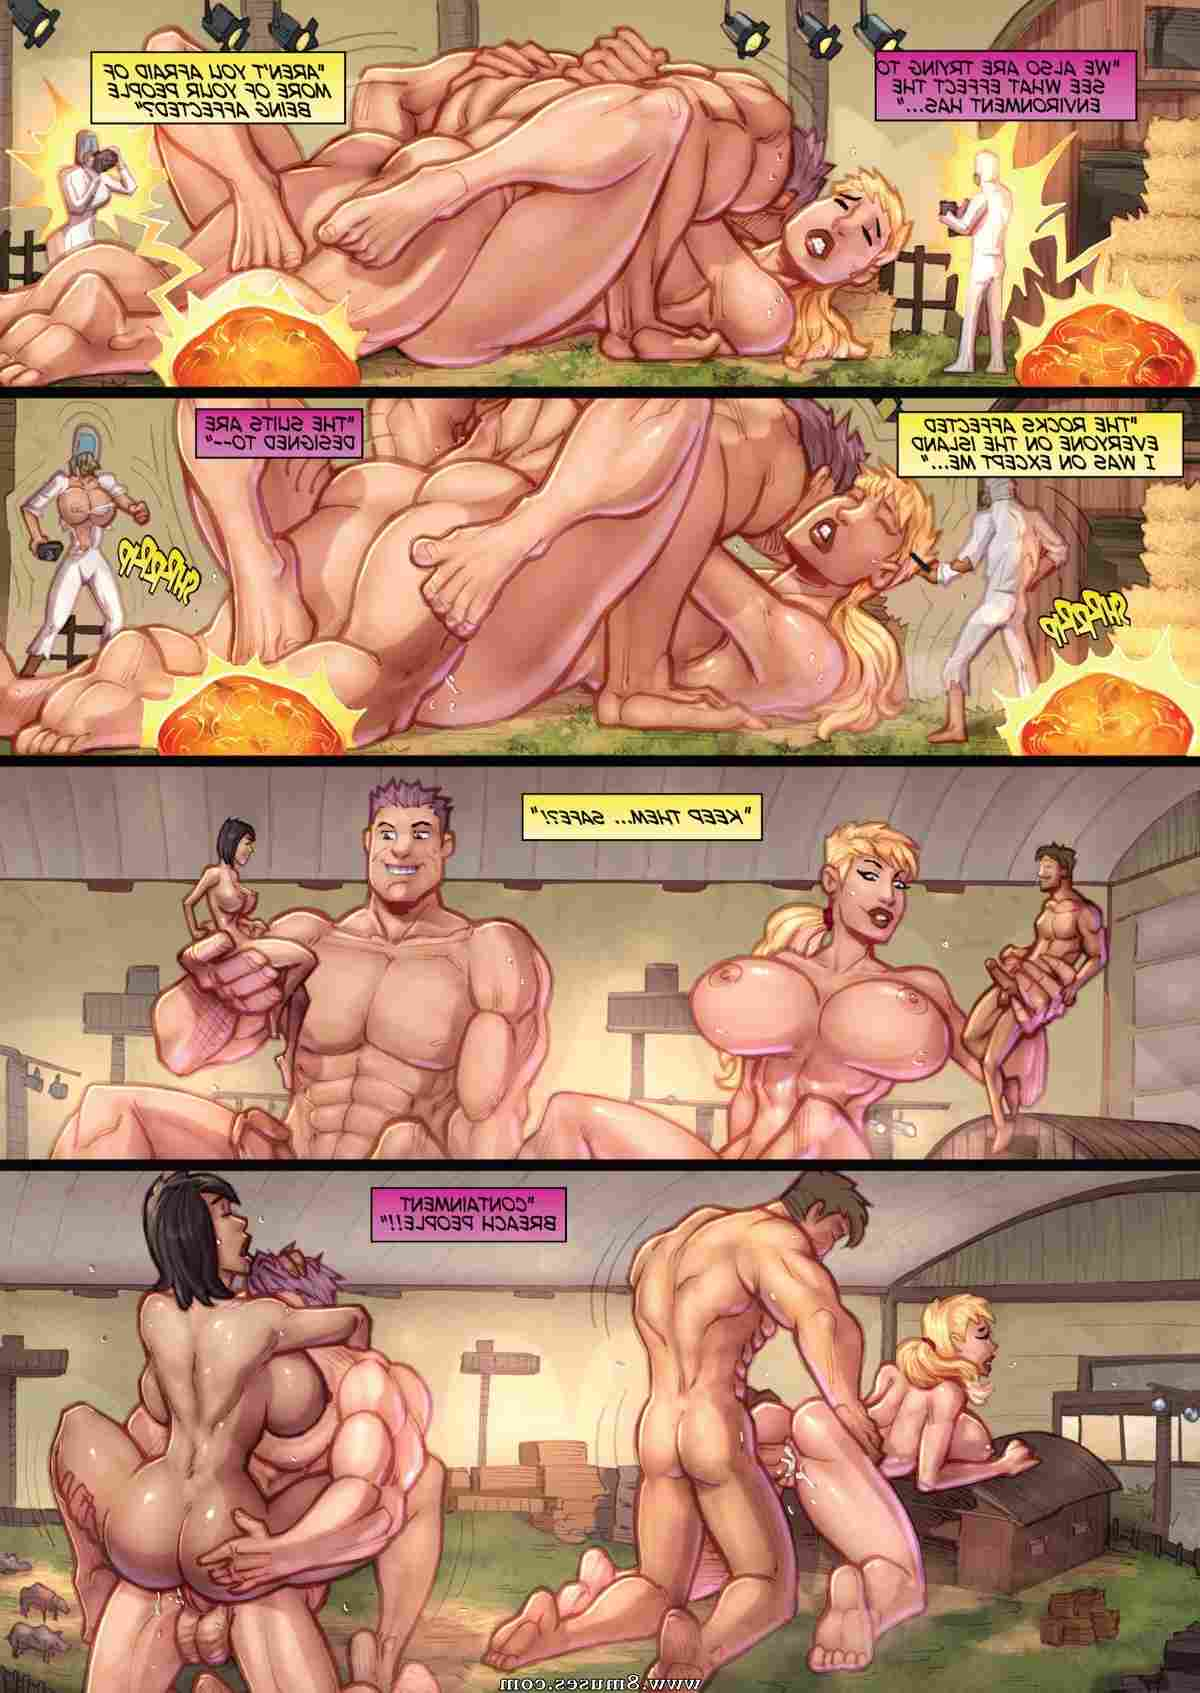 ZZZ-Comics/Everything-Grown Everything_Grown__8muses_-_Sex_and_Porn_Comics_17.jpg